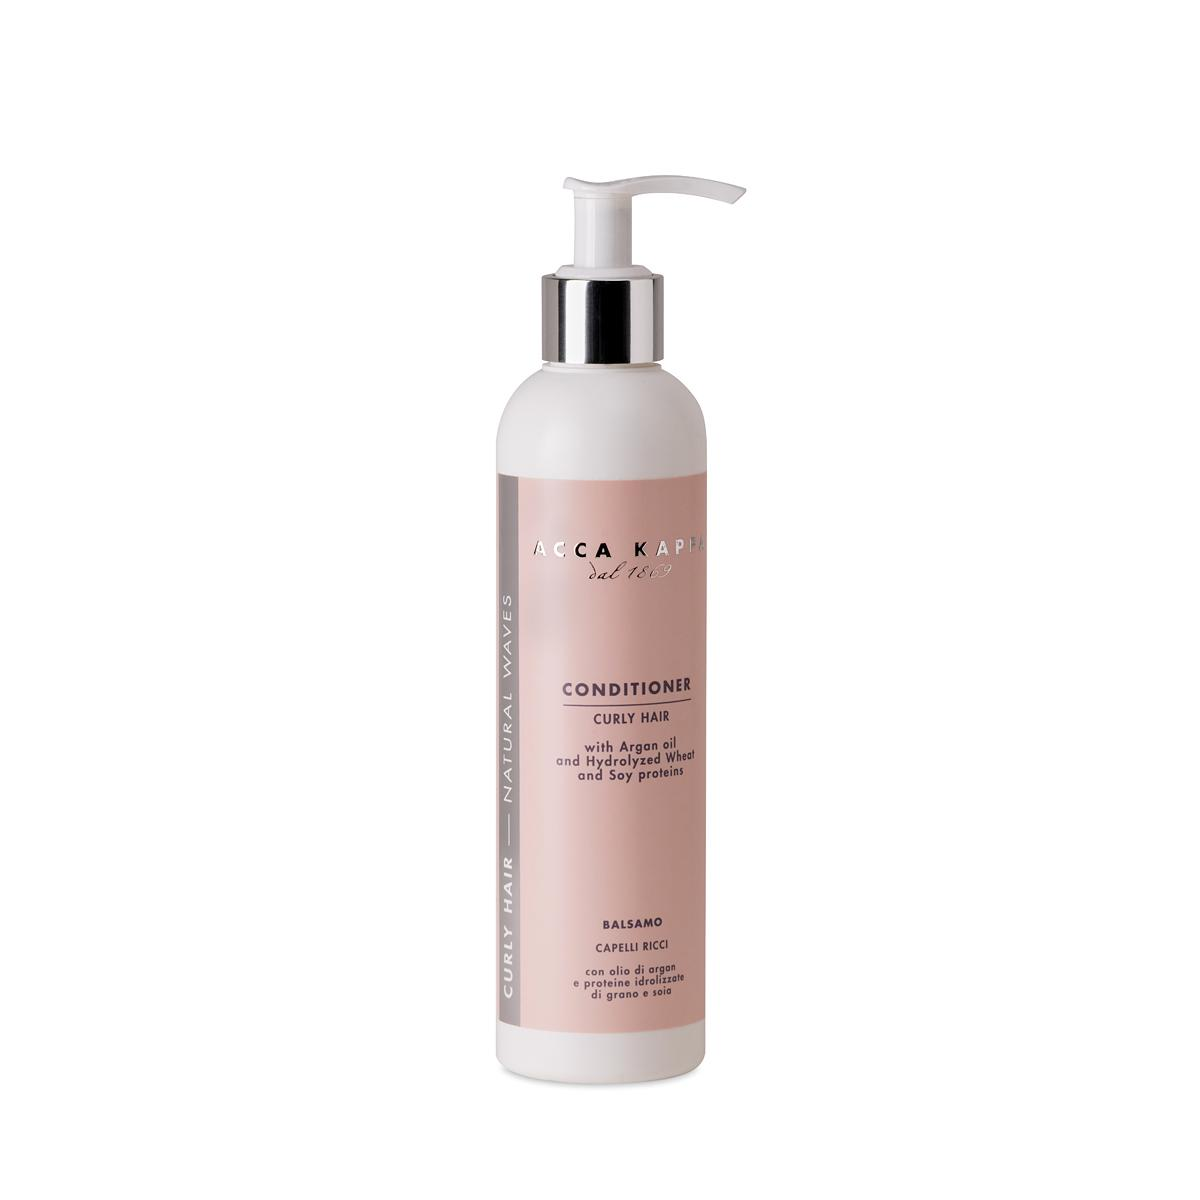 Curly Hair Conditioner and Mask - 250ml